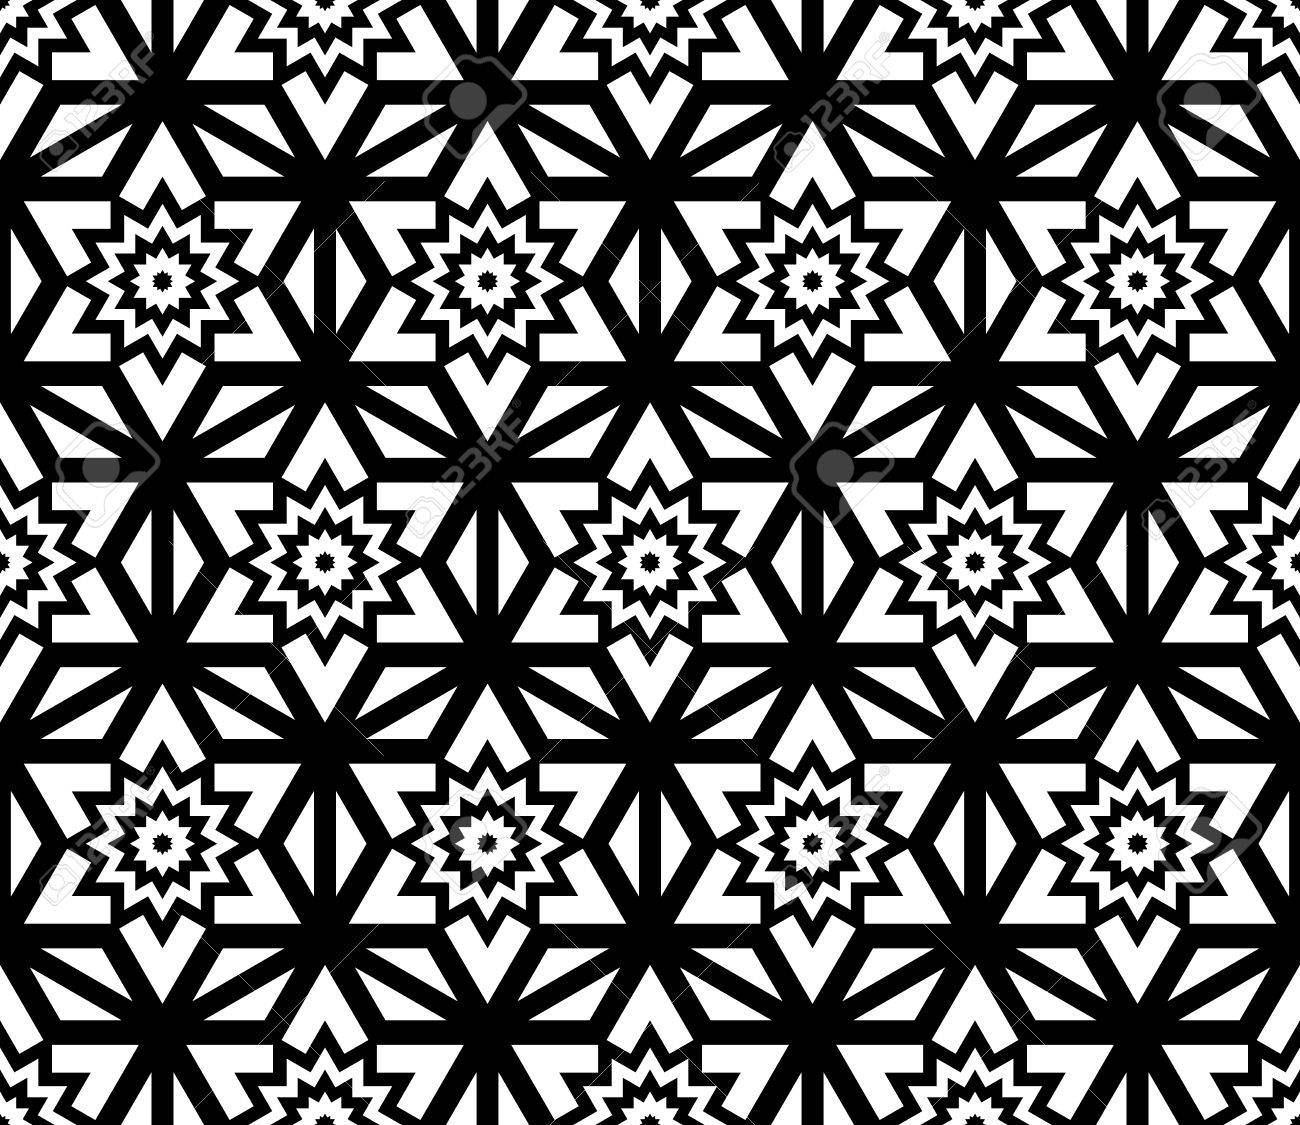 Bed sheet design texture - Vector Vector Modern Seamless Pattern Flower Black And White Textile Print Stylish Background Abstract Texture Monochrome Fashion Design Bed Sheets